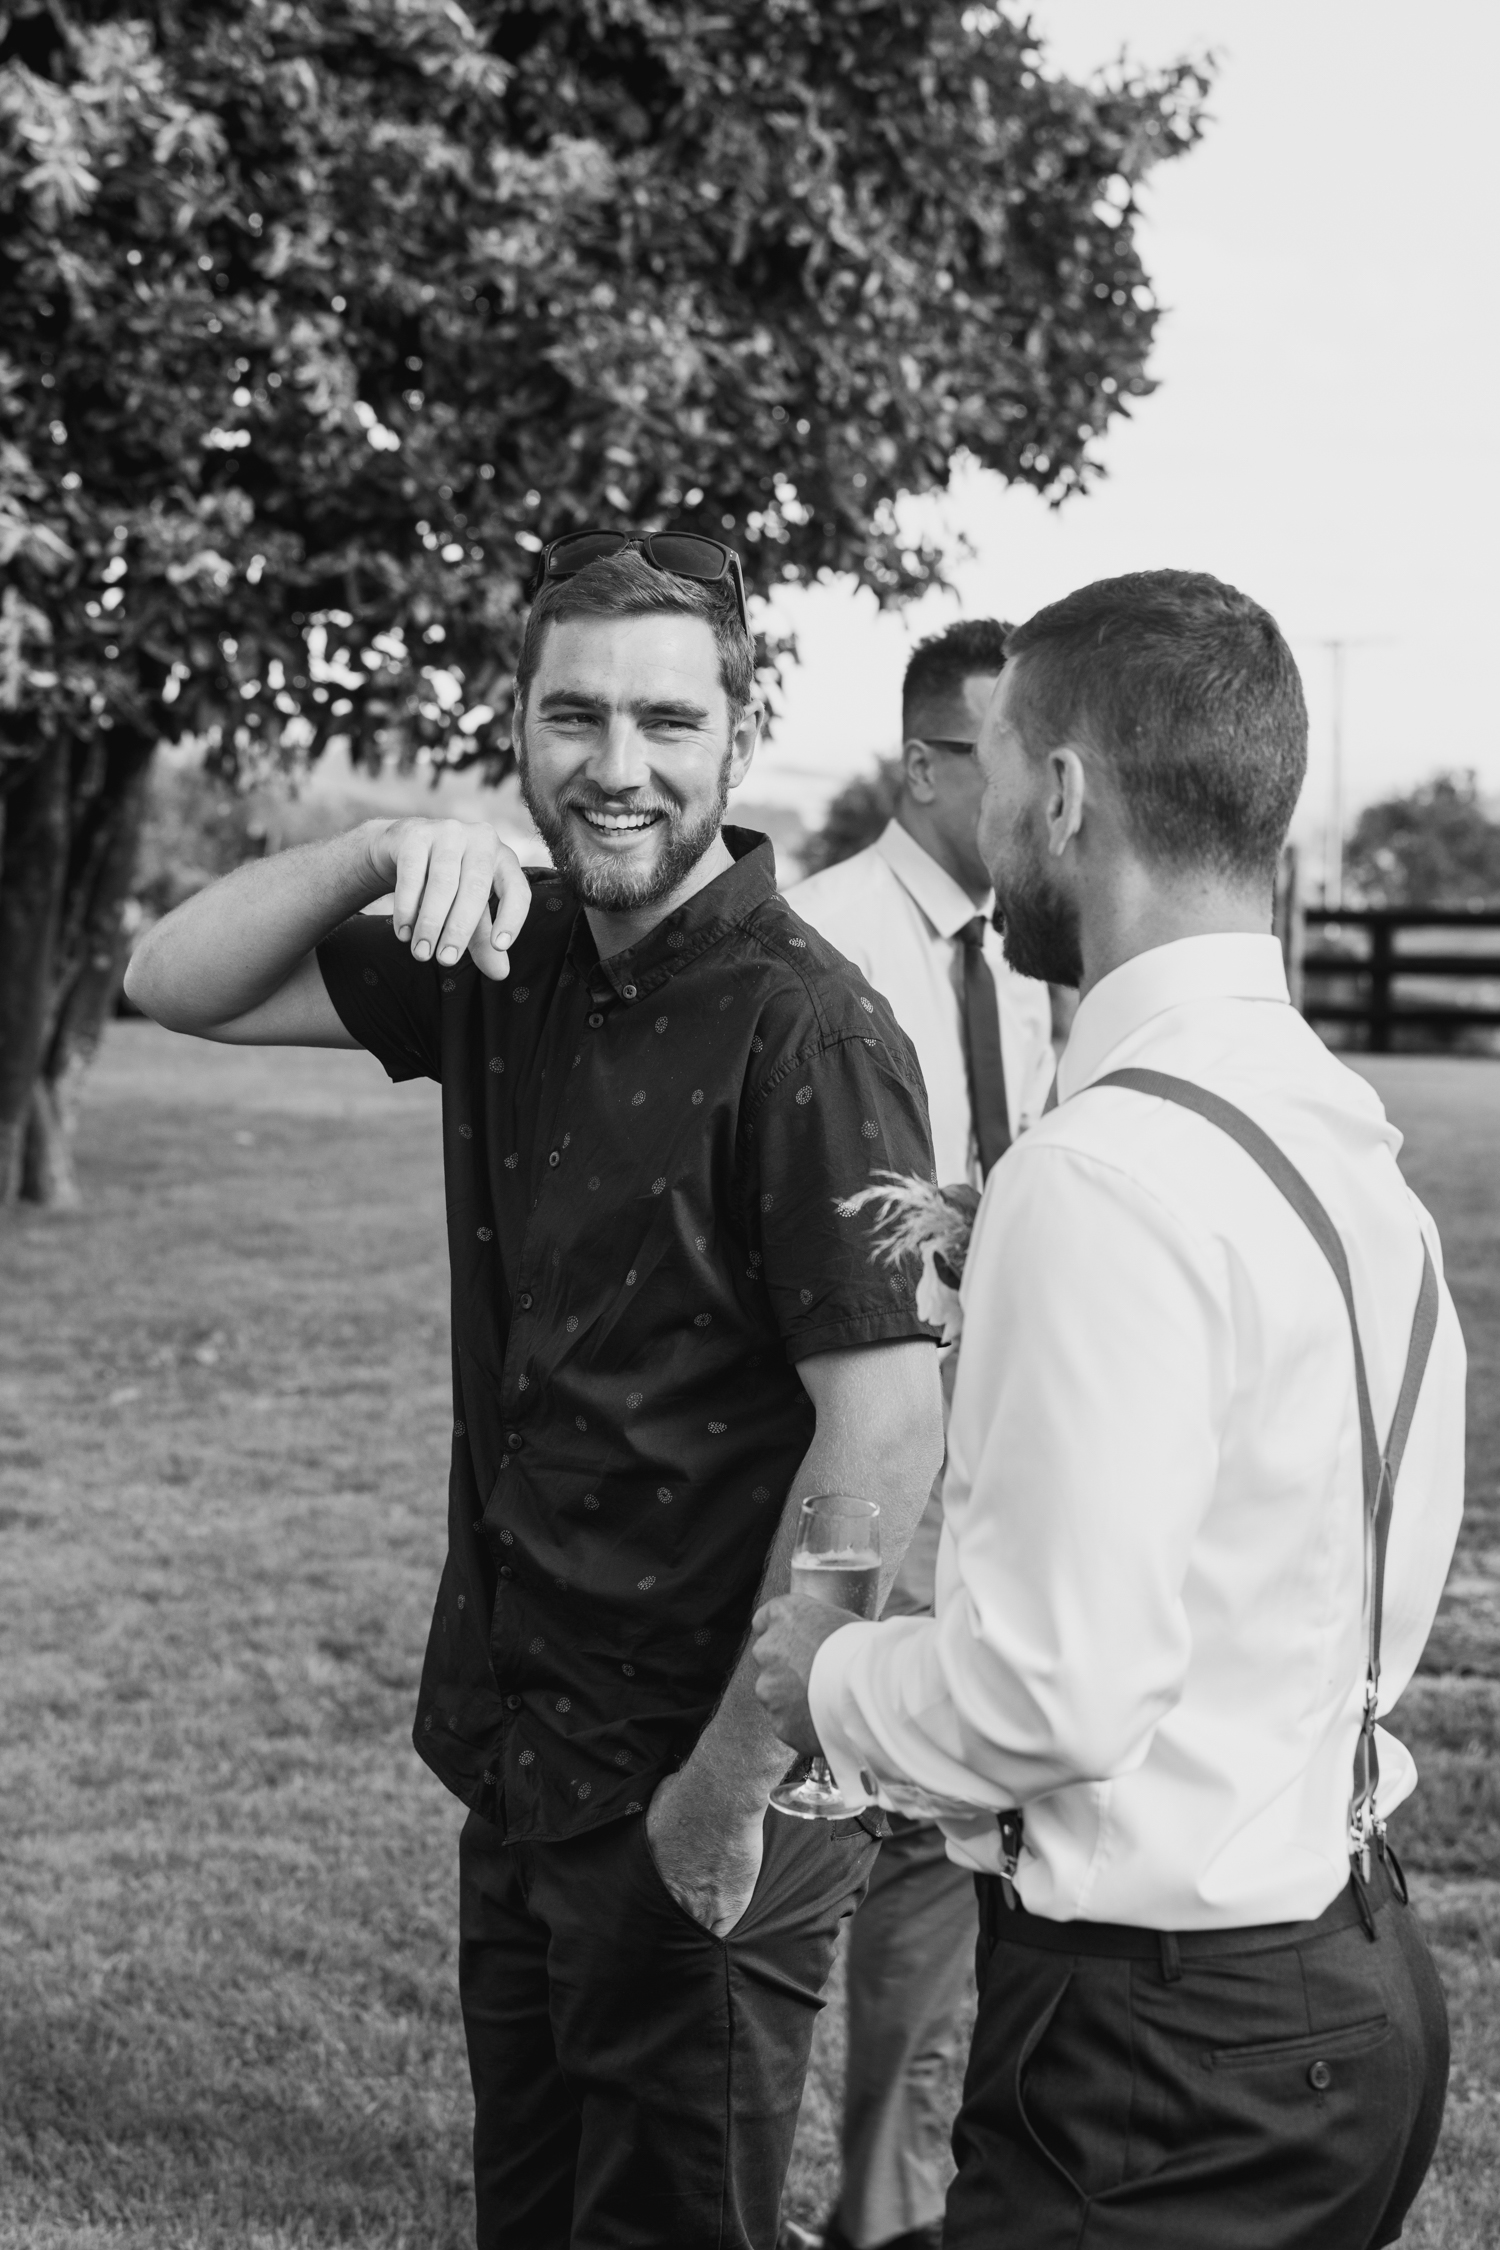 wedding-at-the-red-barn-new-zealand-wedding-photographer-groom-laughing-with-friend.jpg